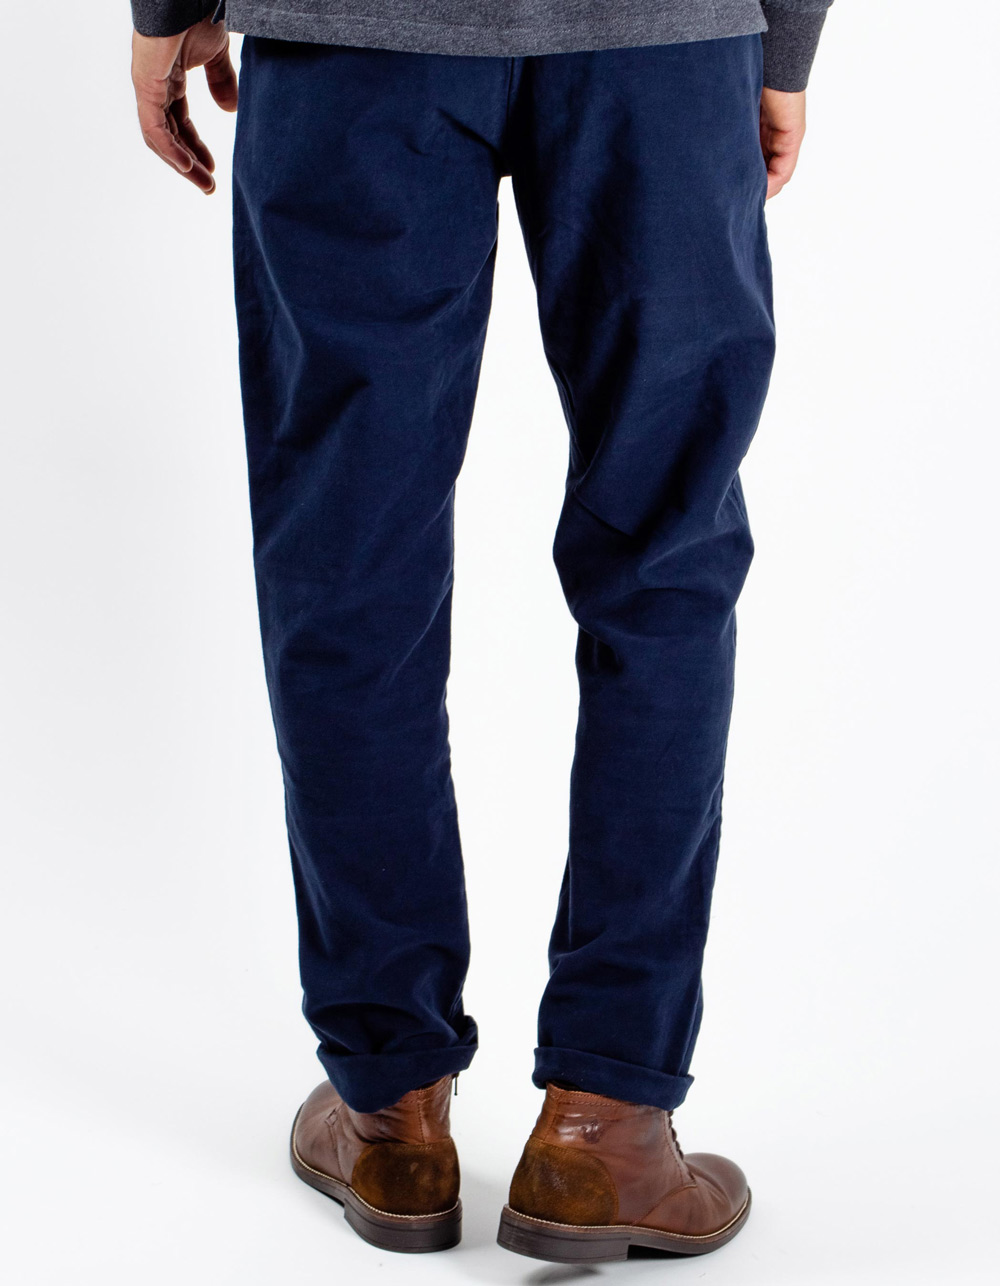 Dark Navy chinos trousers - Backside